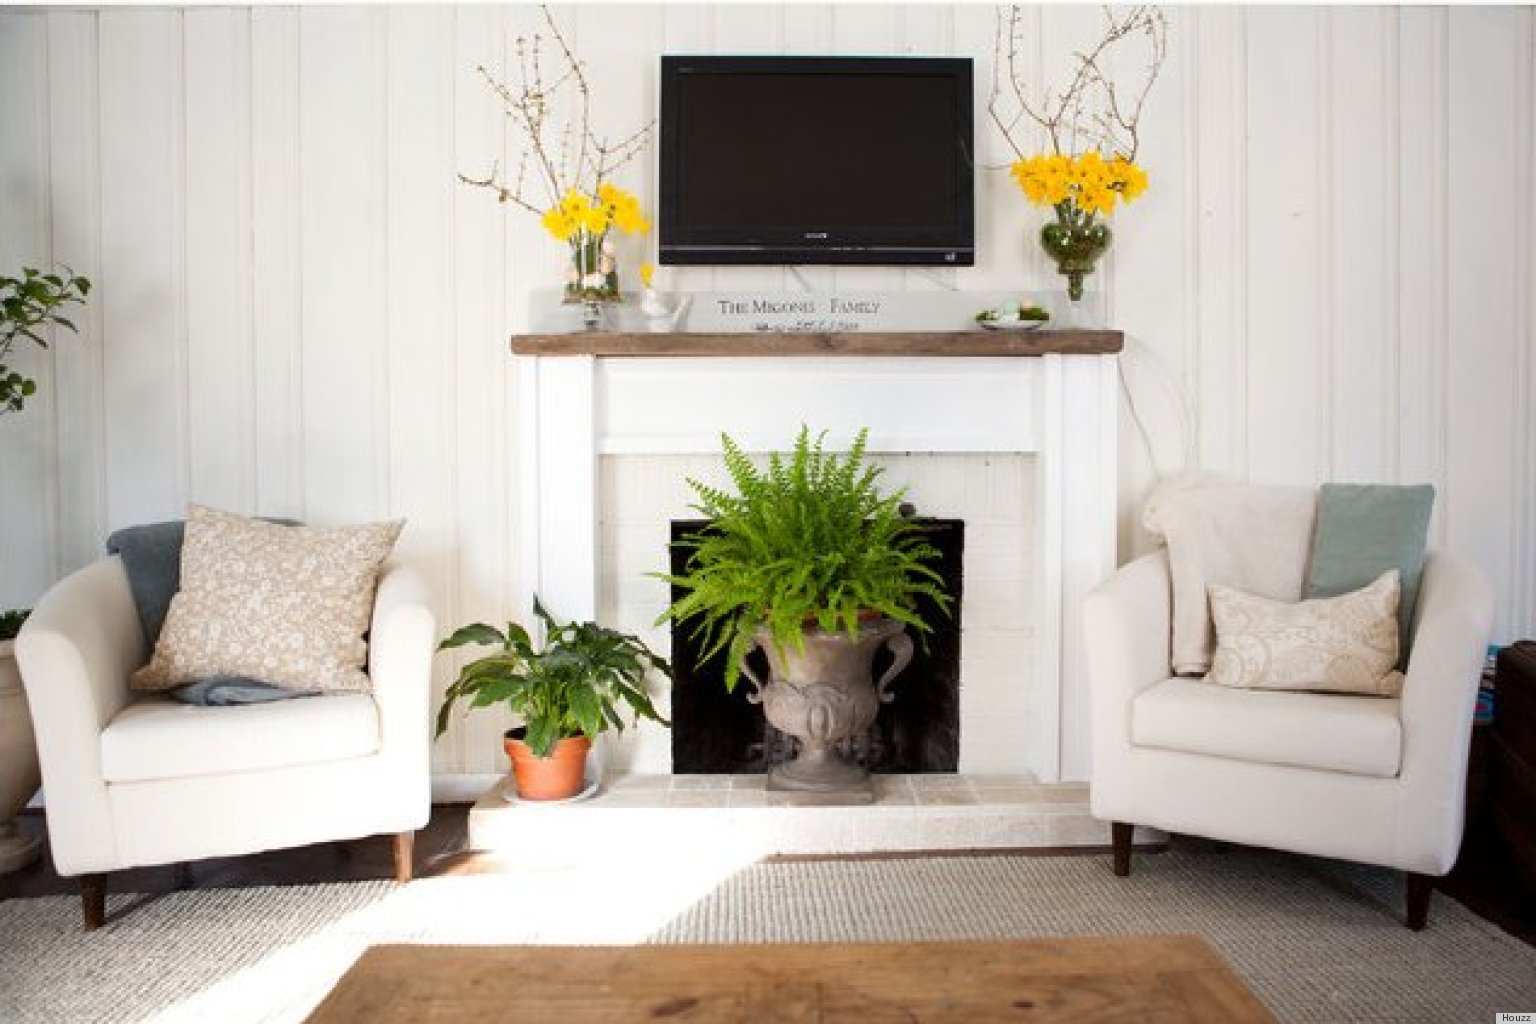 10 ways to decorate your fireplace in the summer since for Front room decorating designs